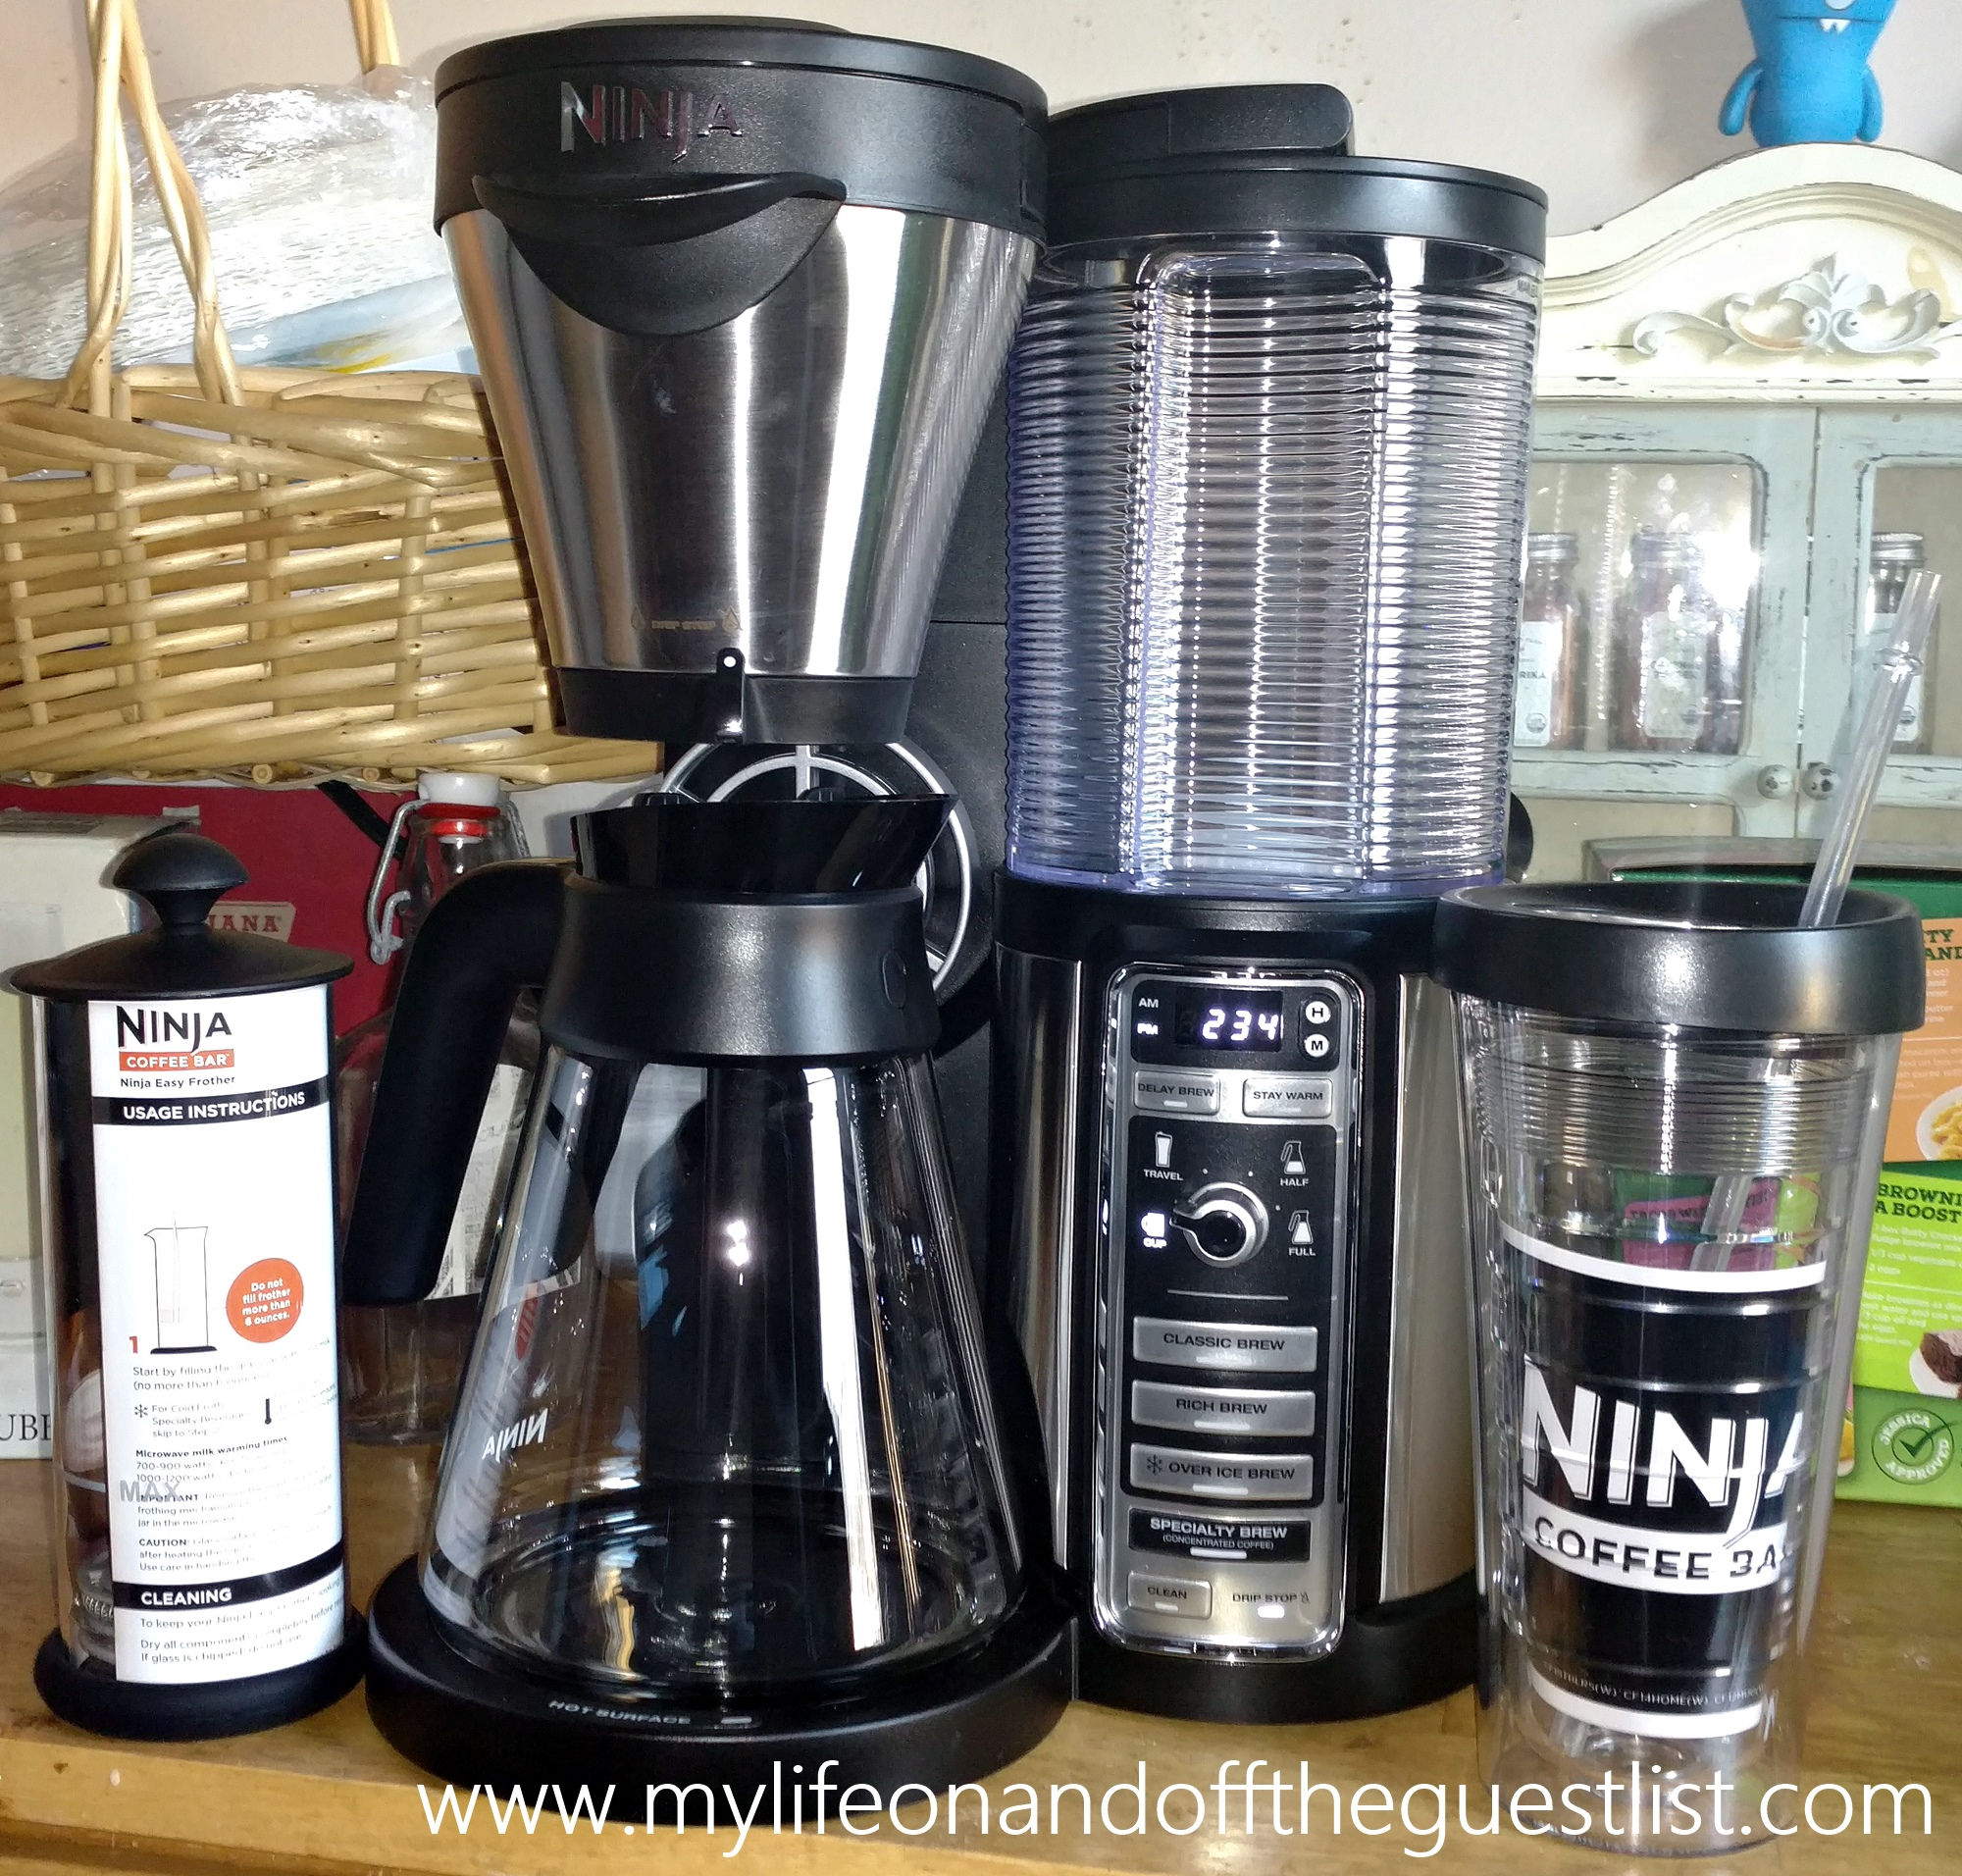 Kitchen Coffee Bar Ninja Coffee Bar Brewer The Brew Master My Life On And Off The